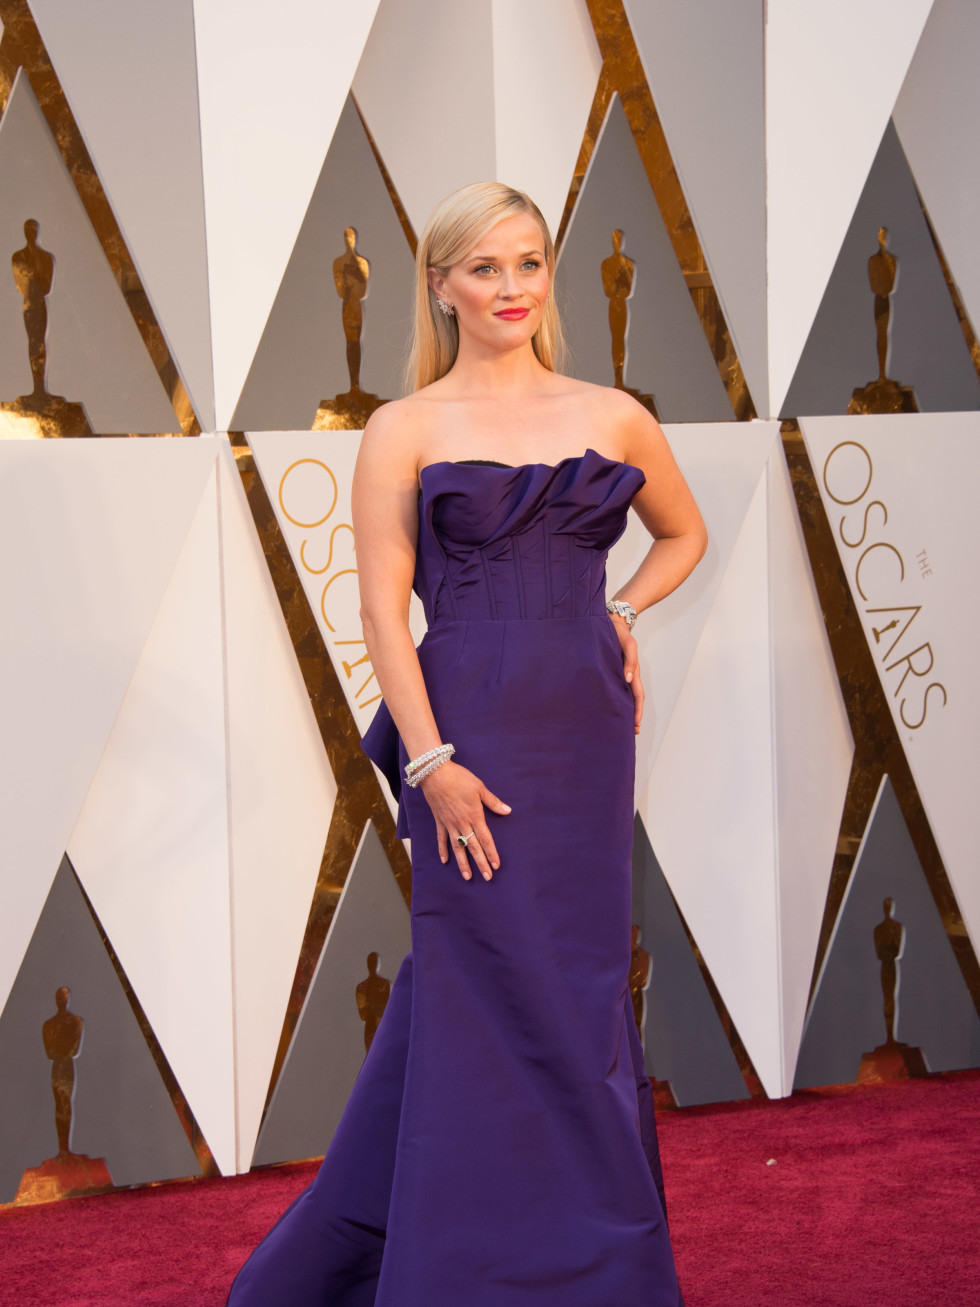 Reese Witherspoon at Oscars